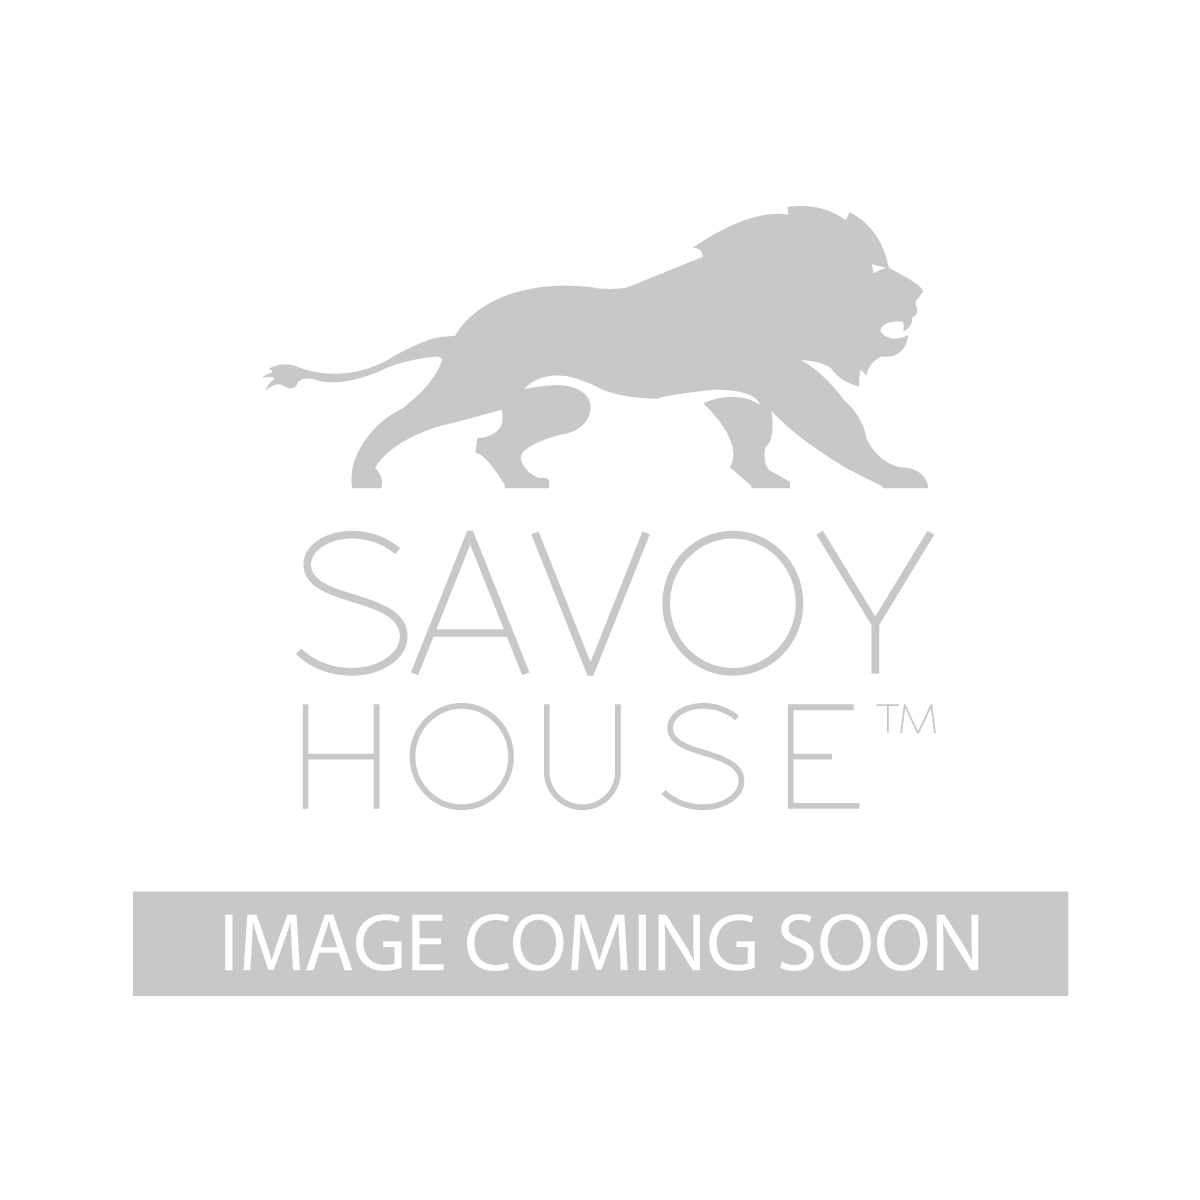 9 4104 2 133 santiago 2 light sconce by savoy house for Savoy house com